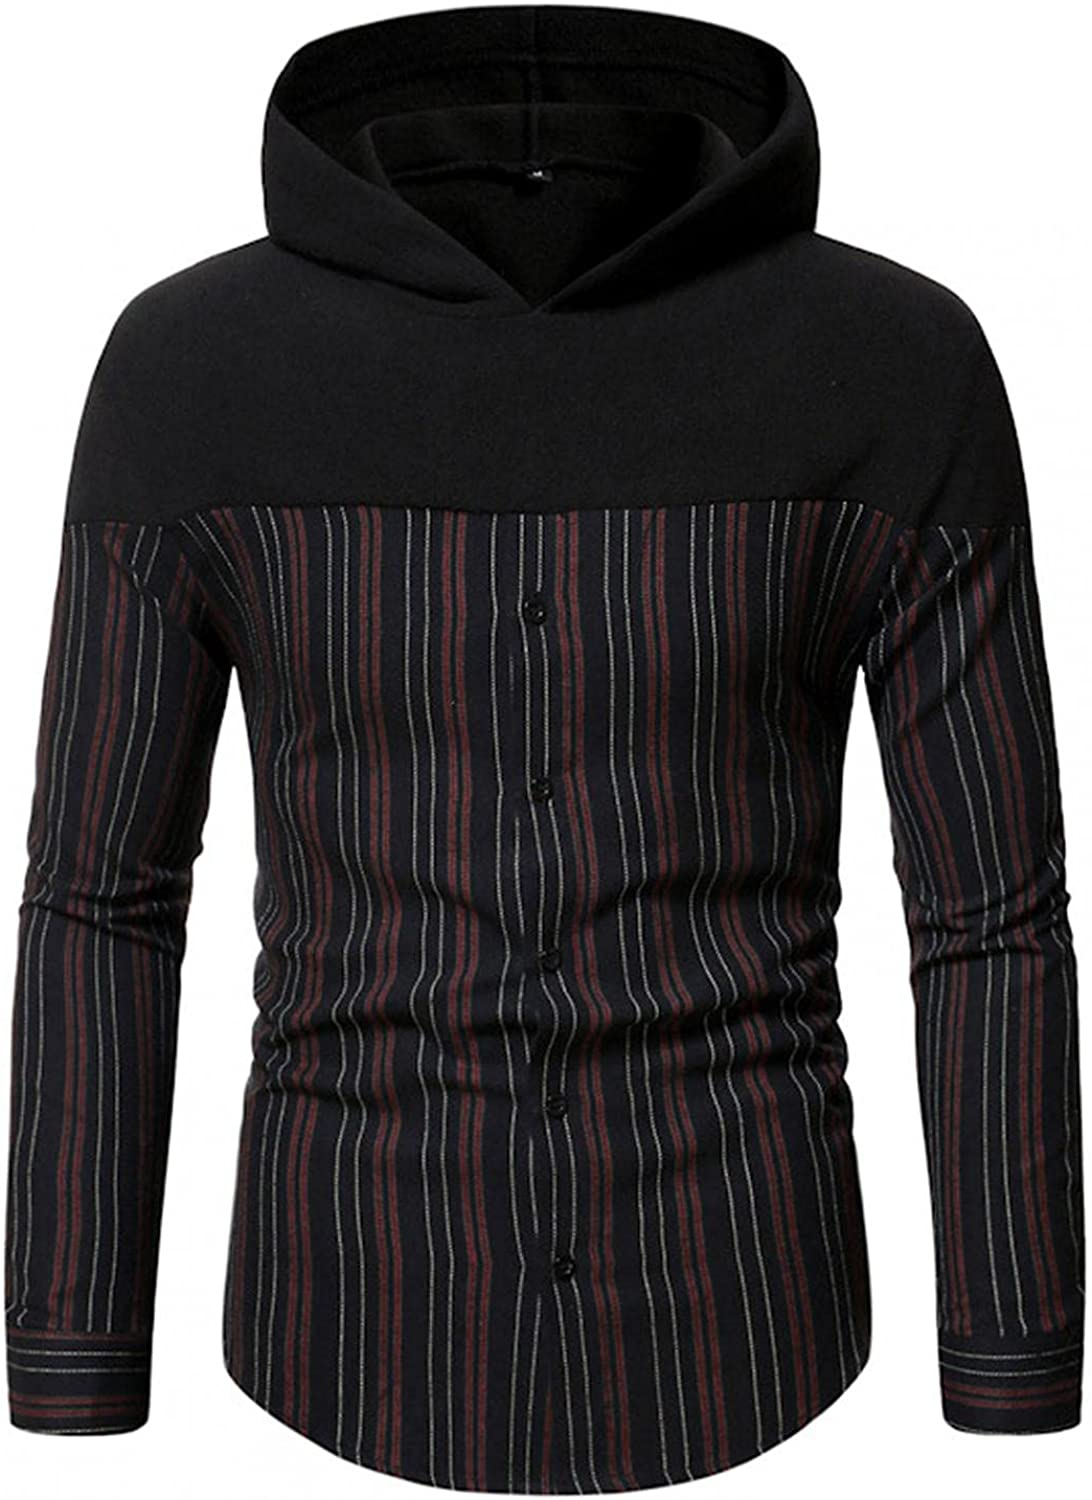 Aayomet Hoodies Sweatshirts for Men Patchwork Checked Button Casual Long Sleeve Hooded Pullover Tops Blouses Sweaters